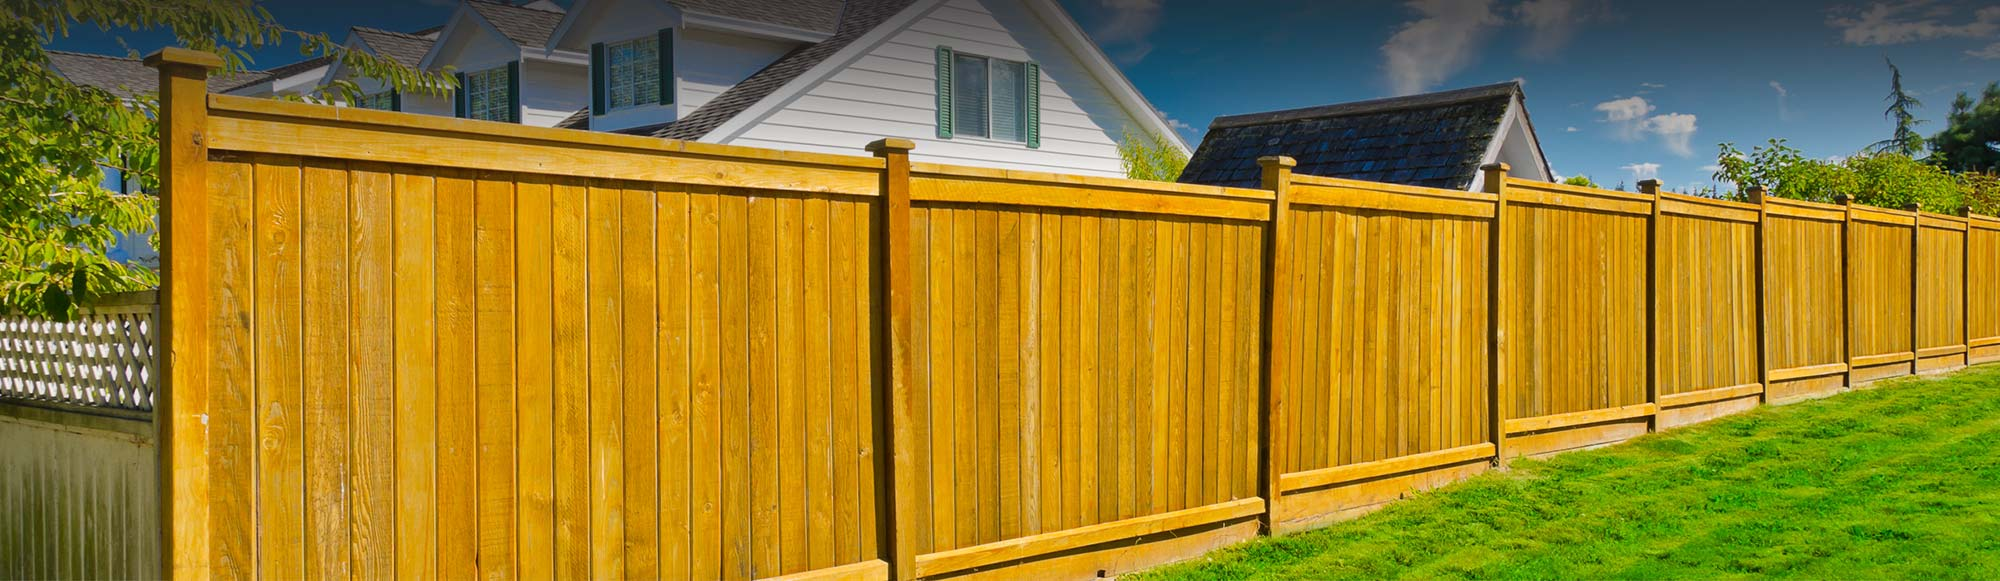 Vinyl Privacy Fence Installation Video